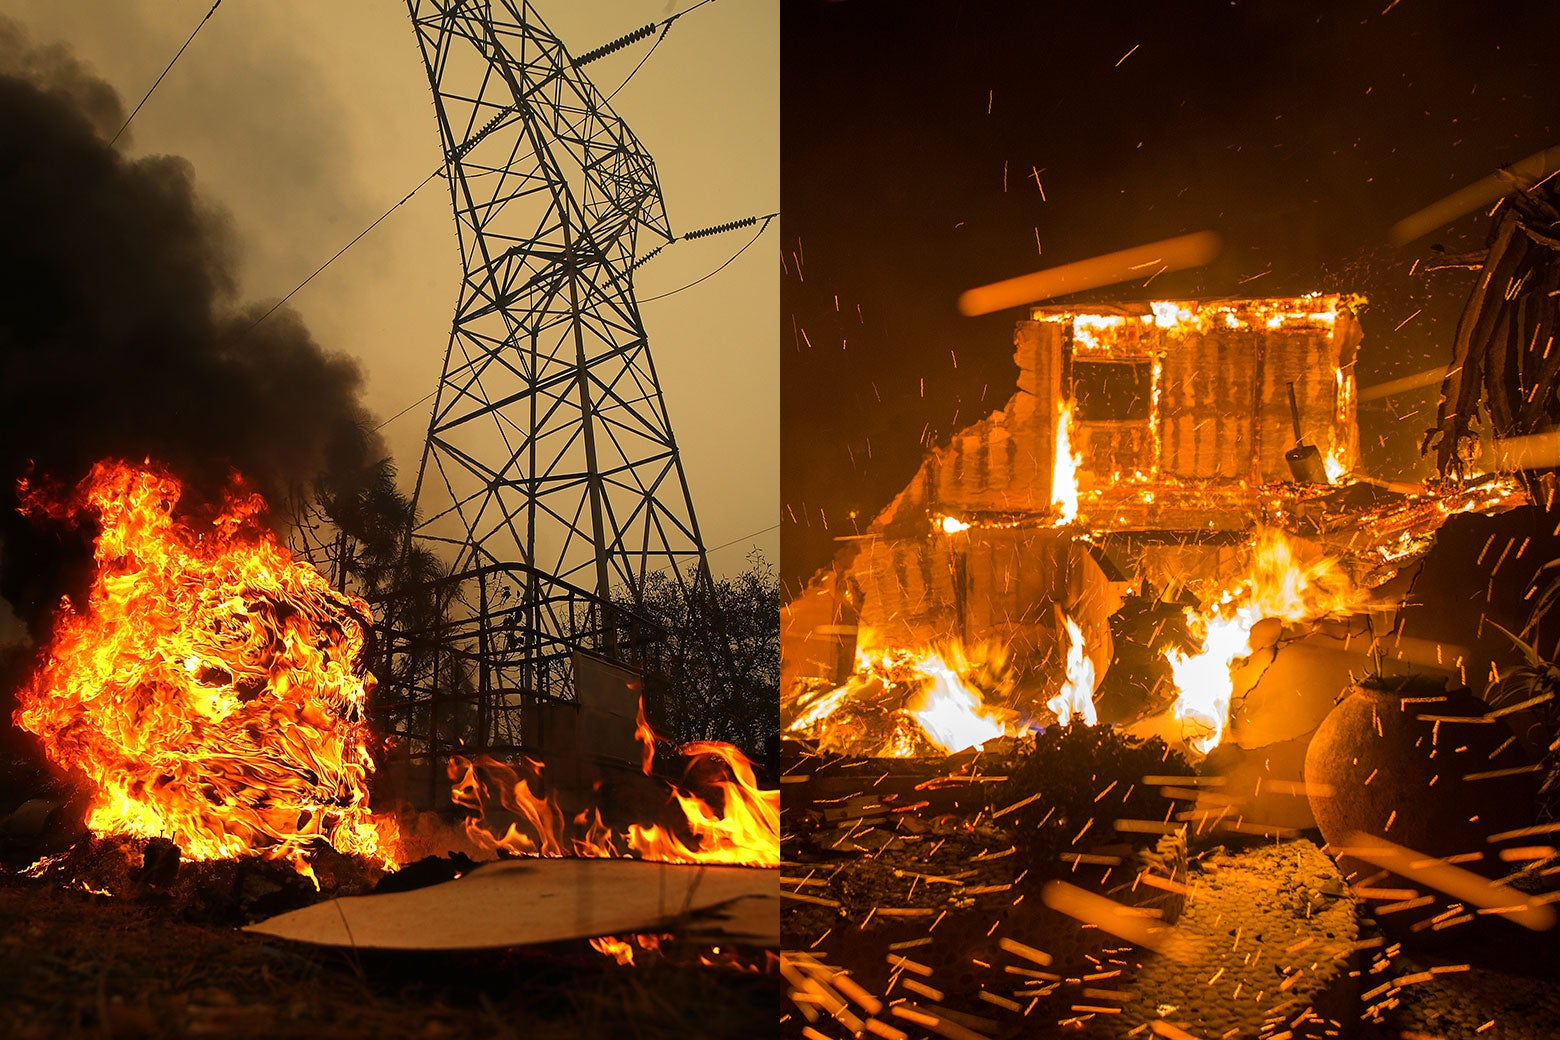 On the left, a fire burns by power lines, and on the left, fire burns structures.